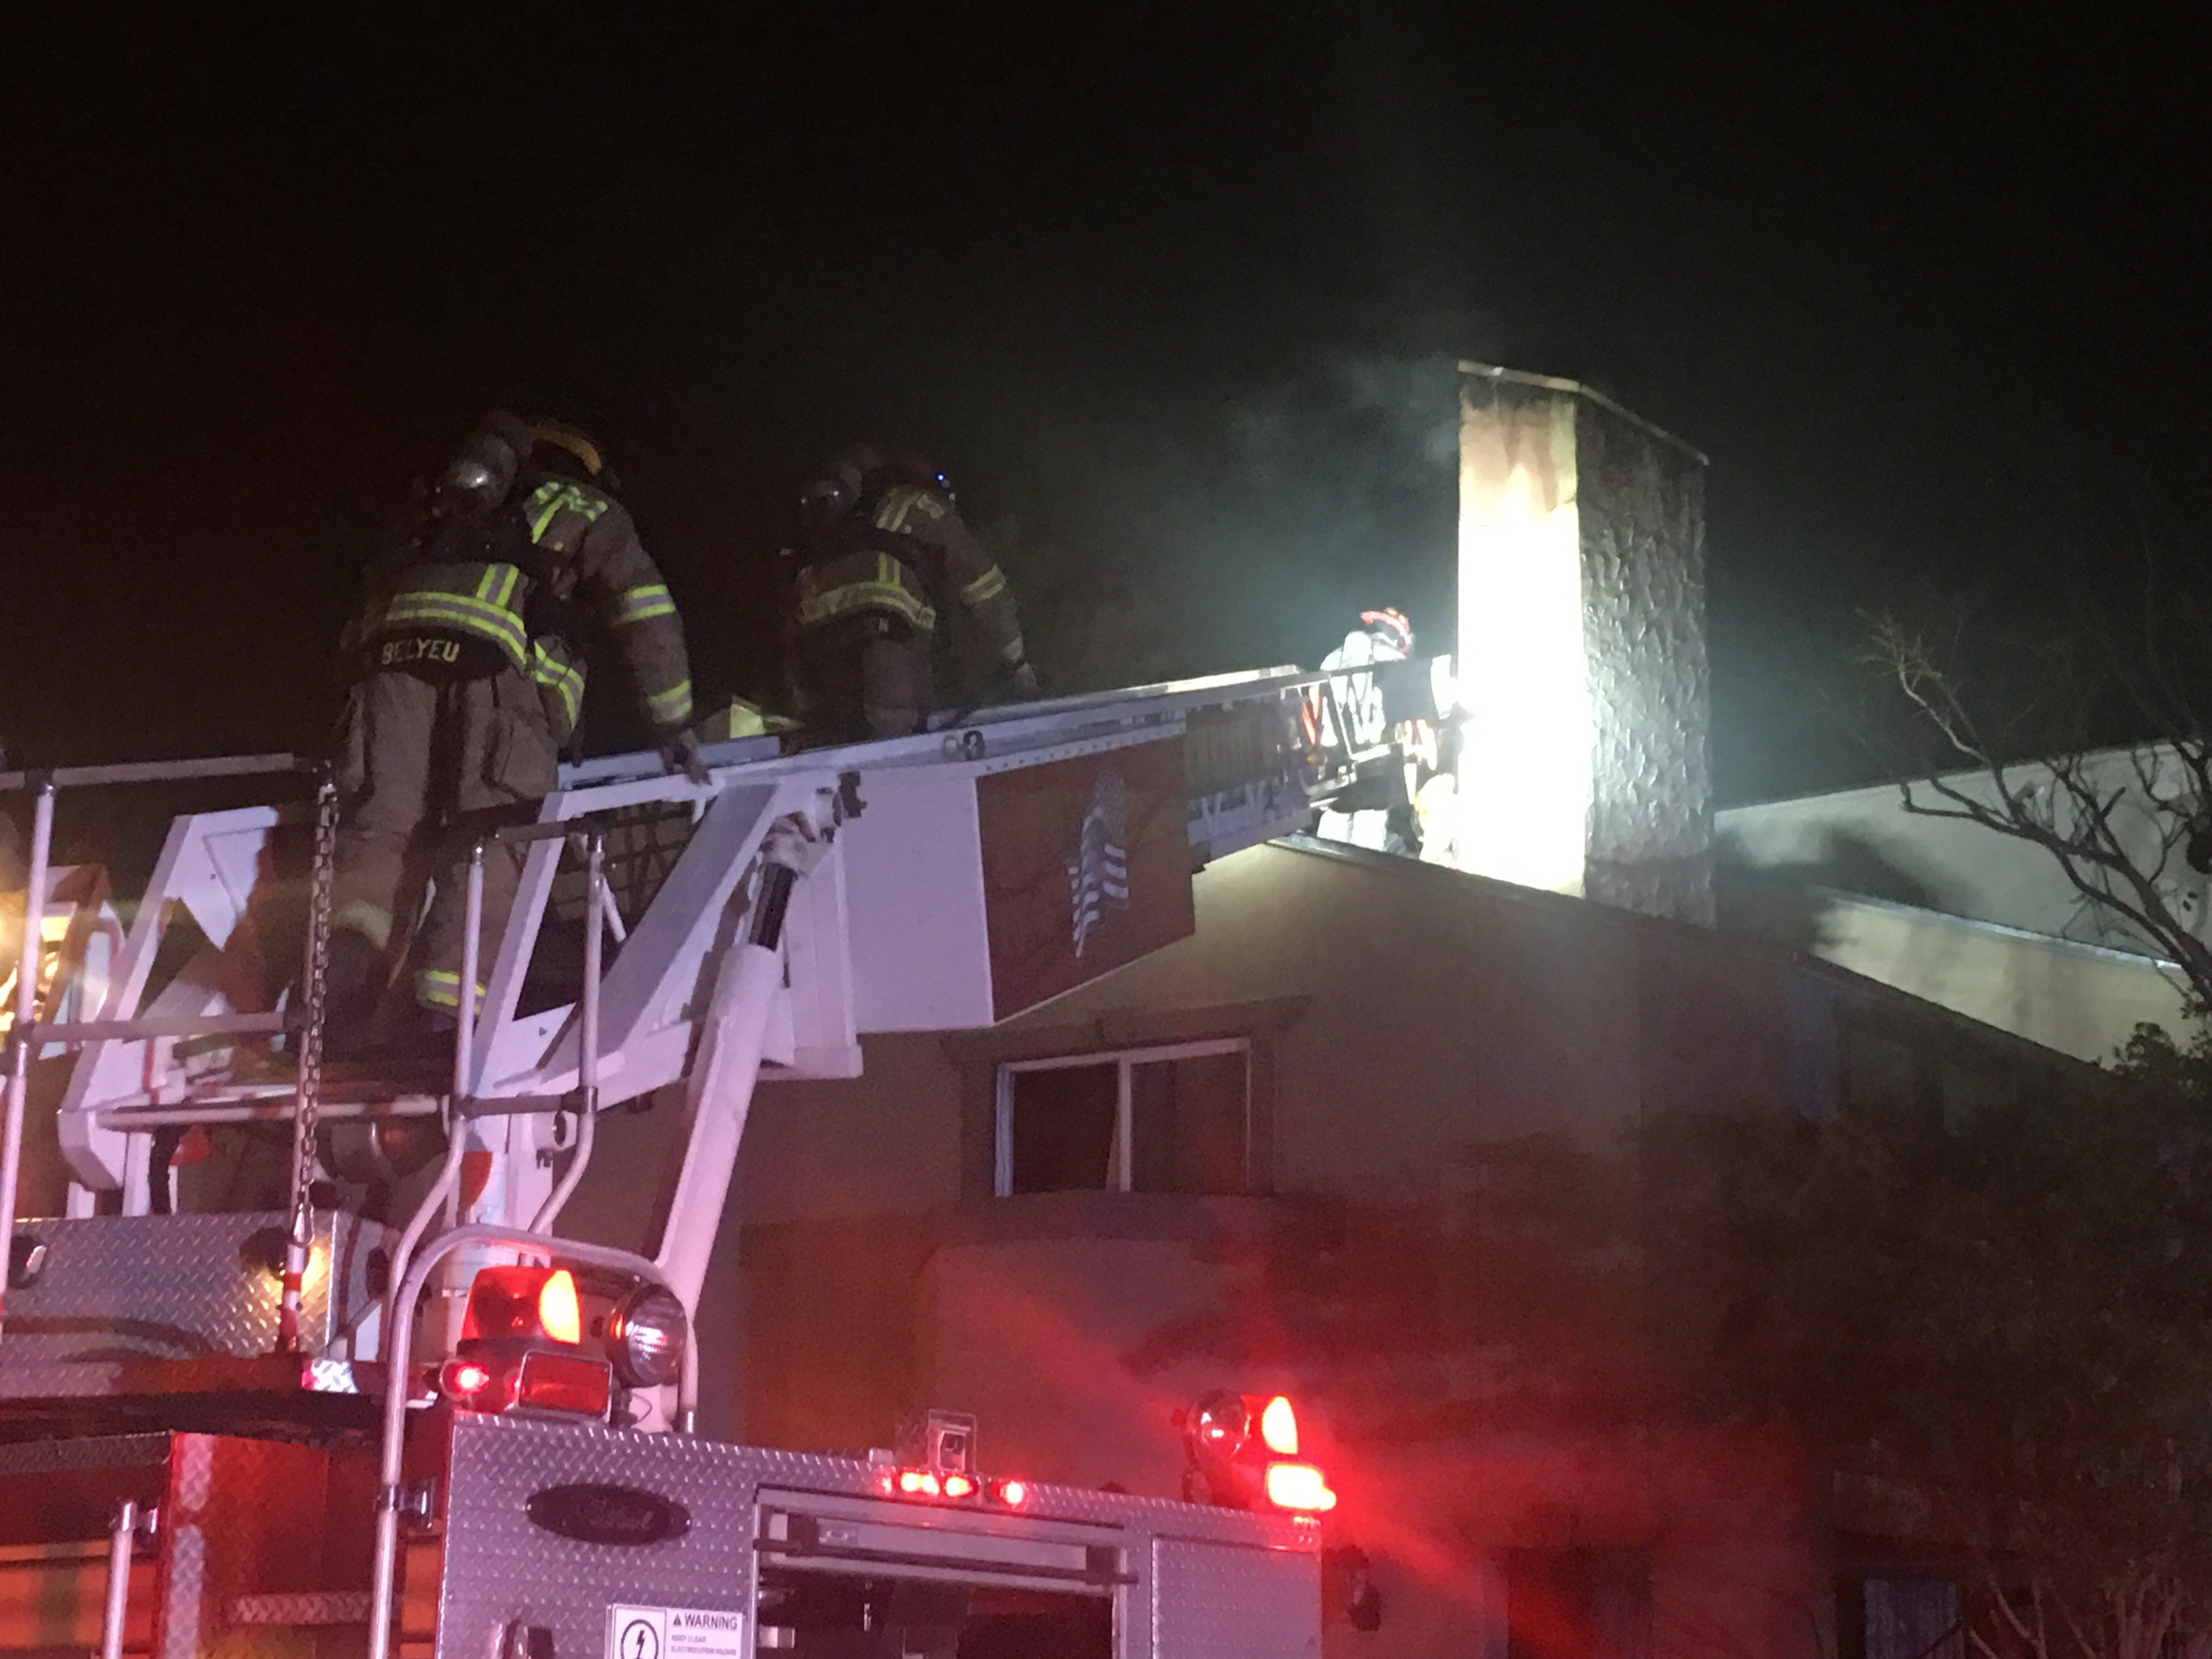 CCFD used ladders and other resources to overcome obstacles posed by the building's design and extinguish the fire.